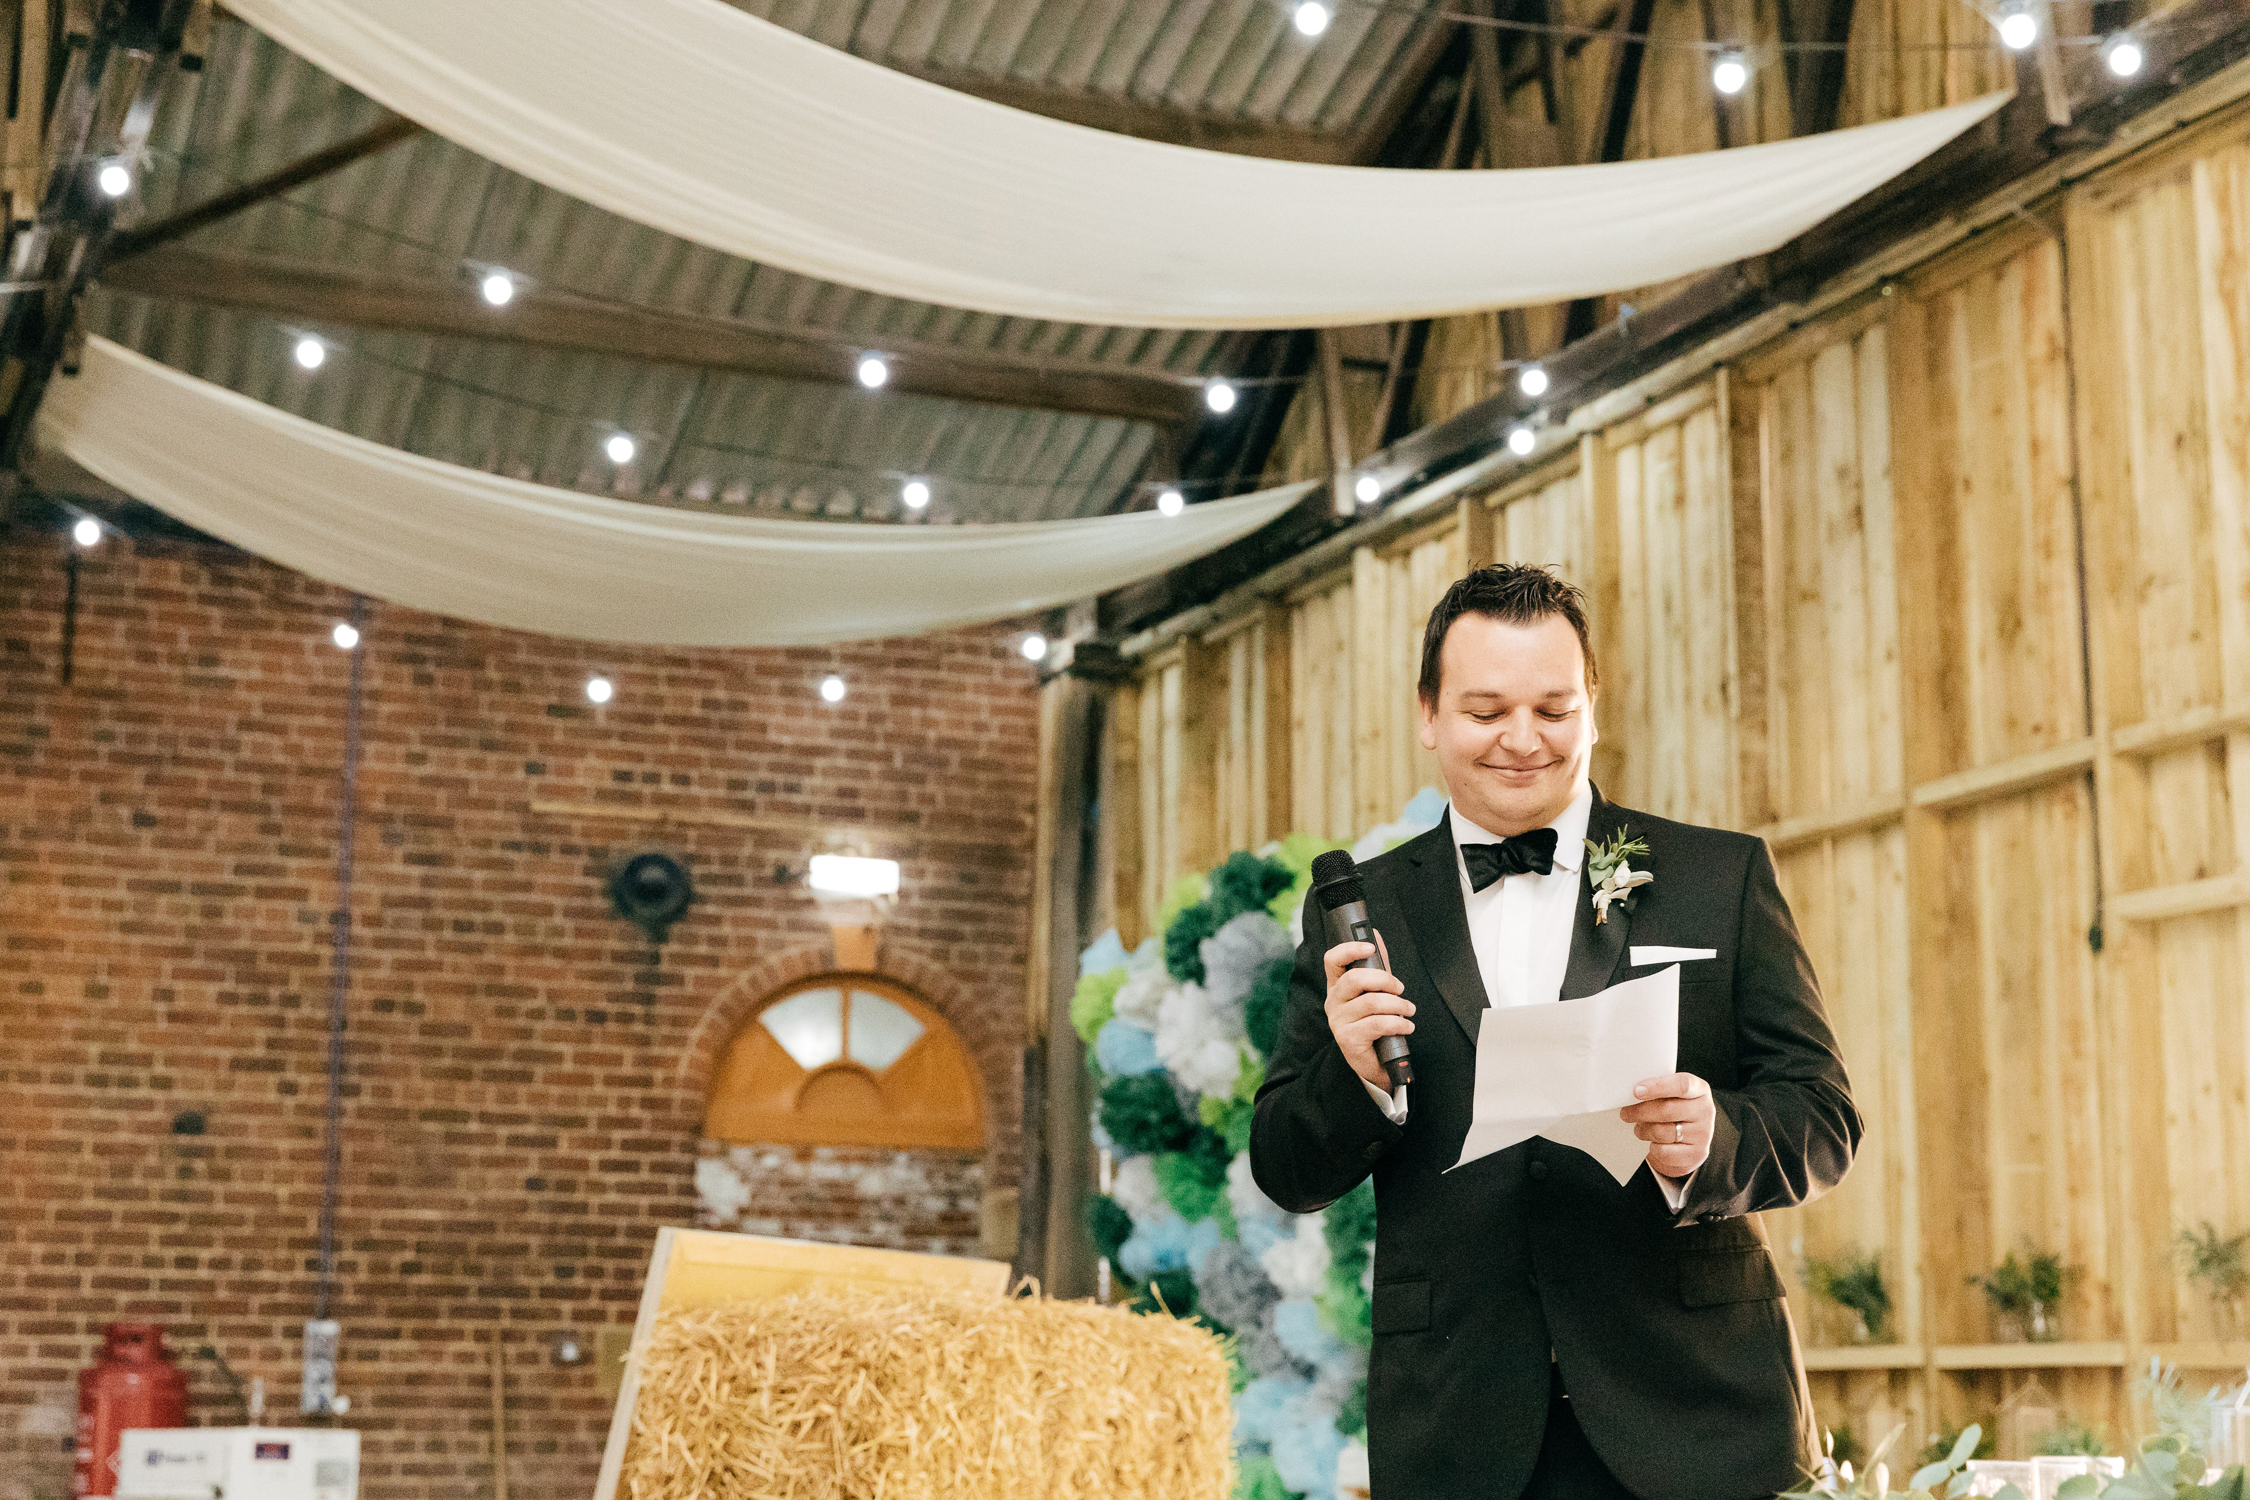 documentary wedding photographer captures speeches at DIY barn wedding